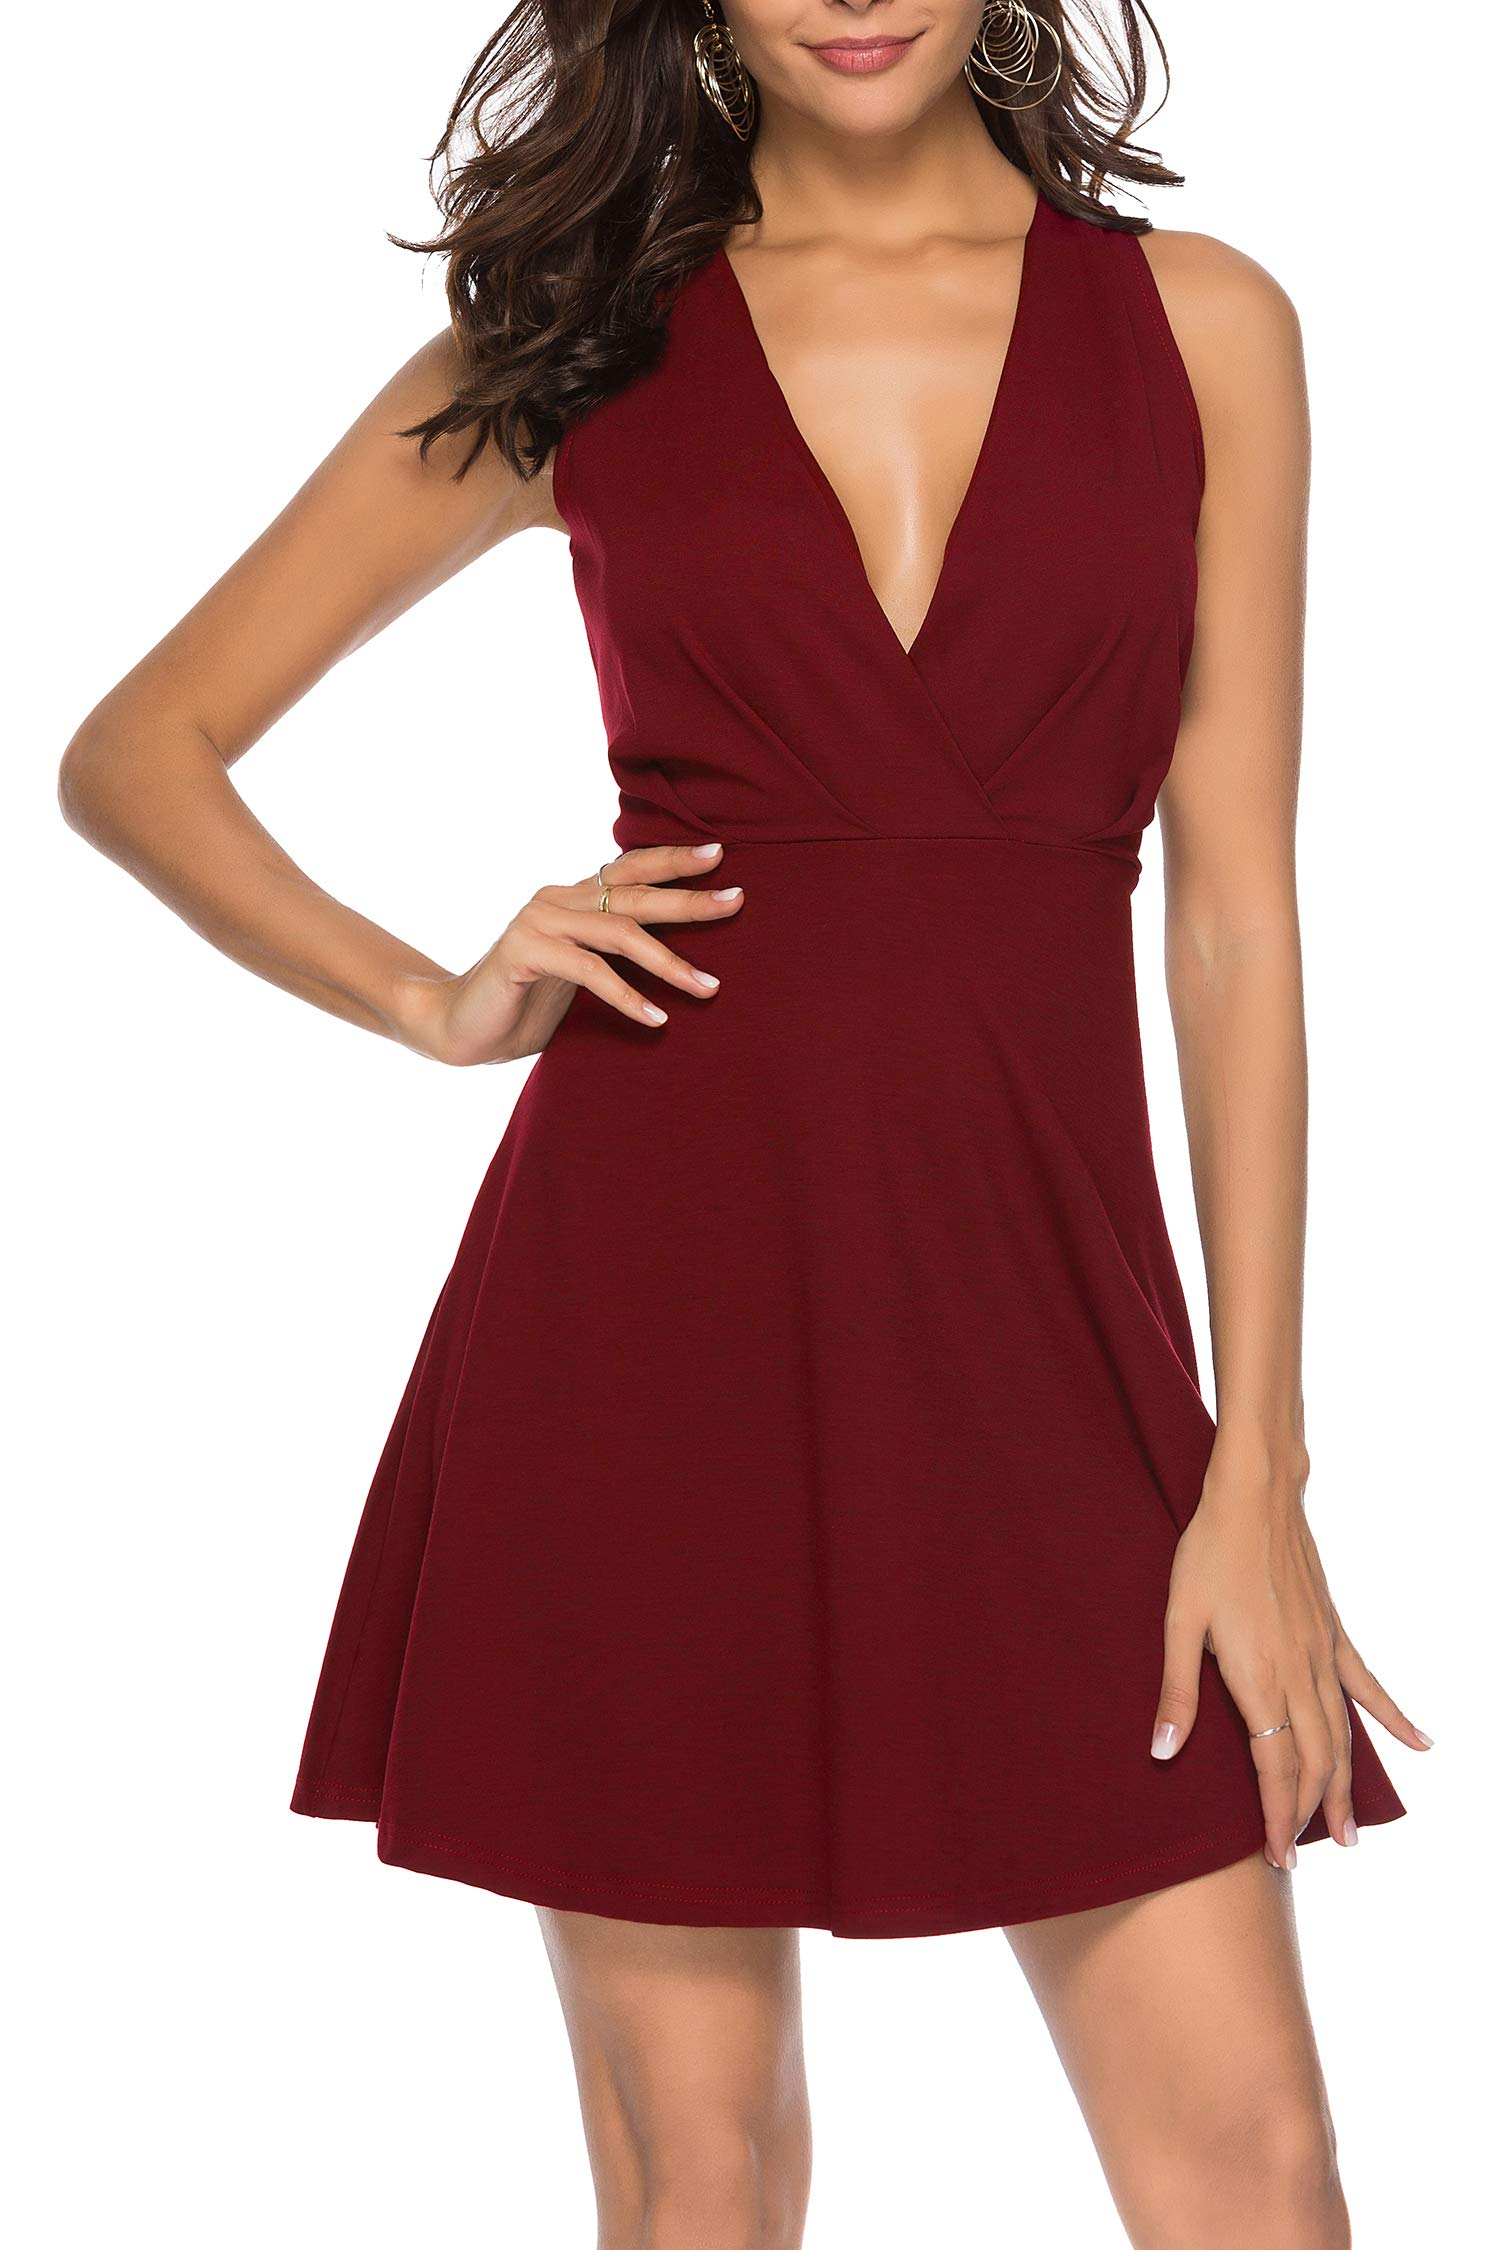 Sarin Mathews Womens Sexy V Neck A-line Homecoming Cocktail Party Skater Dress